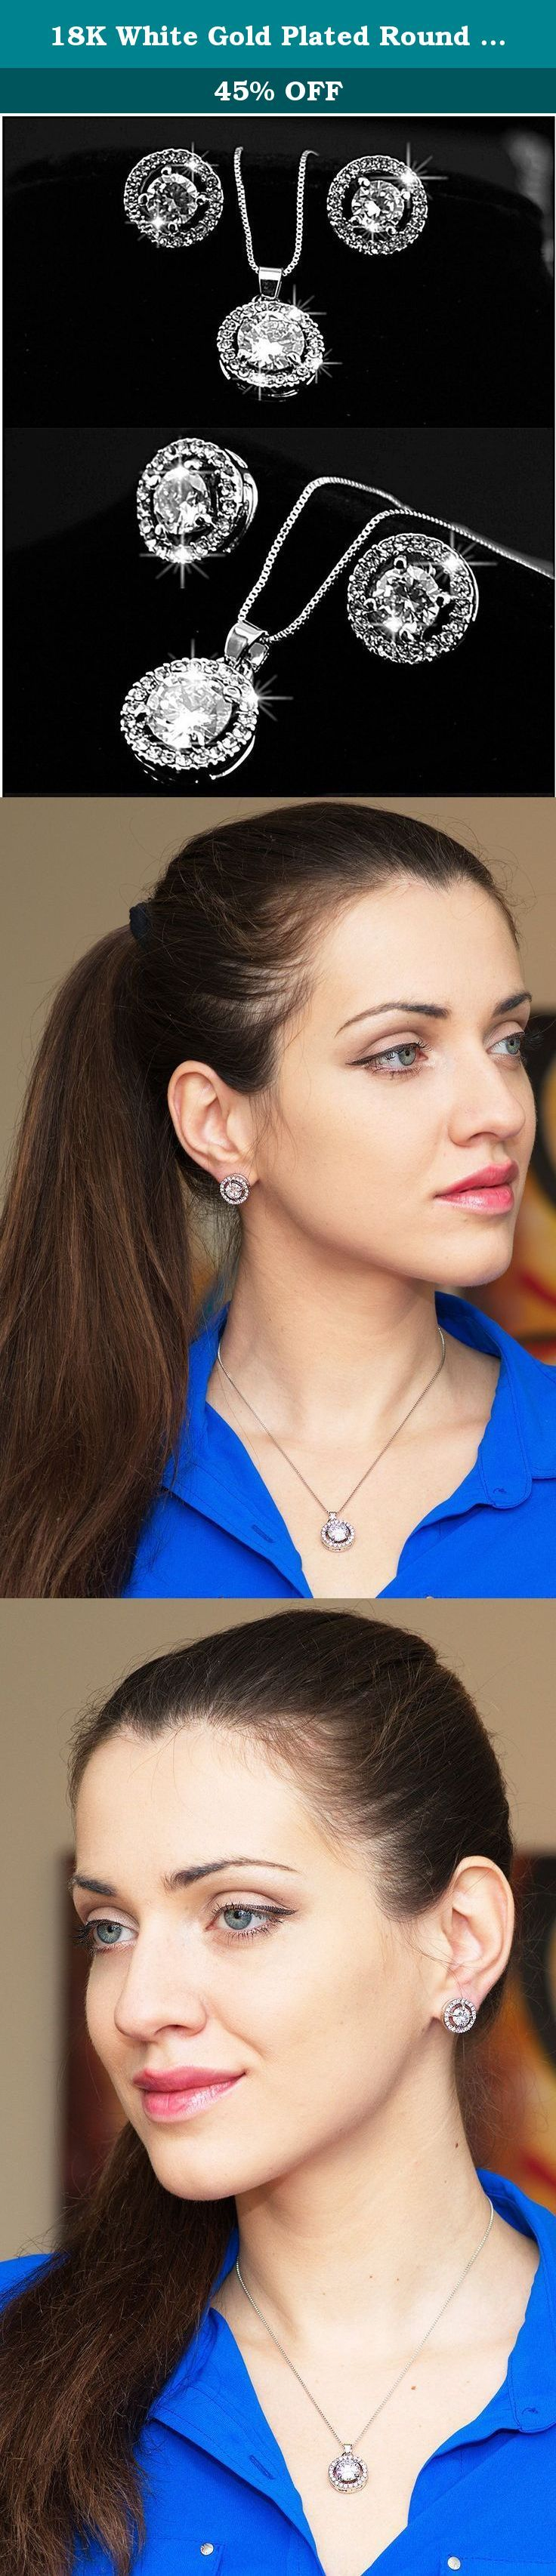 "18K White Gold Plated Round Necklace Stud Earrings Jewelry Set for women and teen girls. ""Why would I want to buy this product?"" you might ask There are a few simple answers to that: • If you like the design and the concept you'll love the product itself as it is very well made of high quality materials • It is affordable and looks and at the same time feels premium and luxurious • It is made of materials that wouldn't stop you from wearing it every day without worrying about allergies •…"